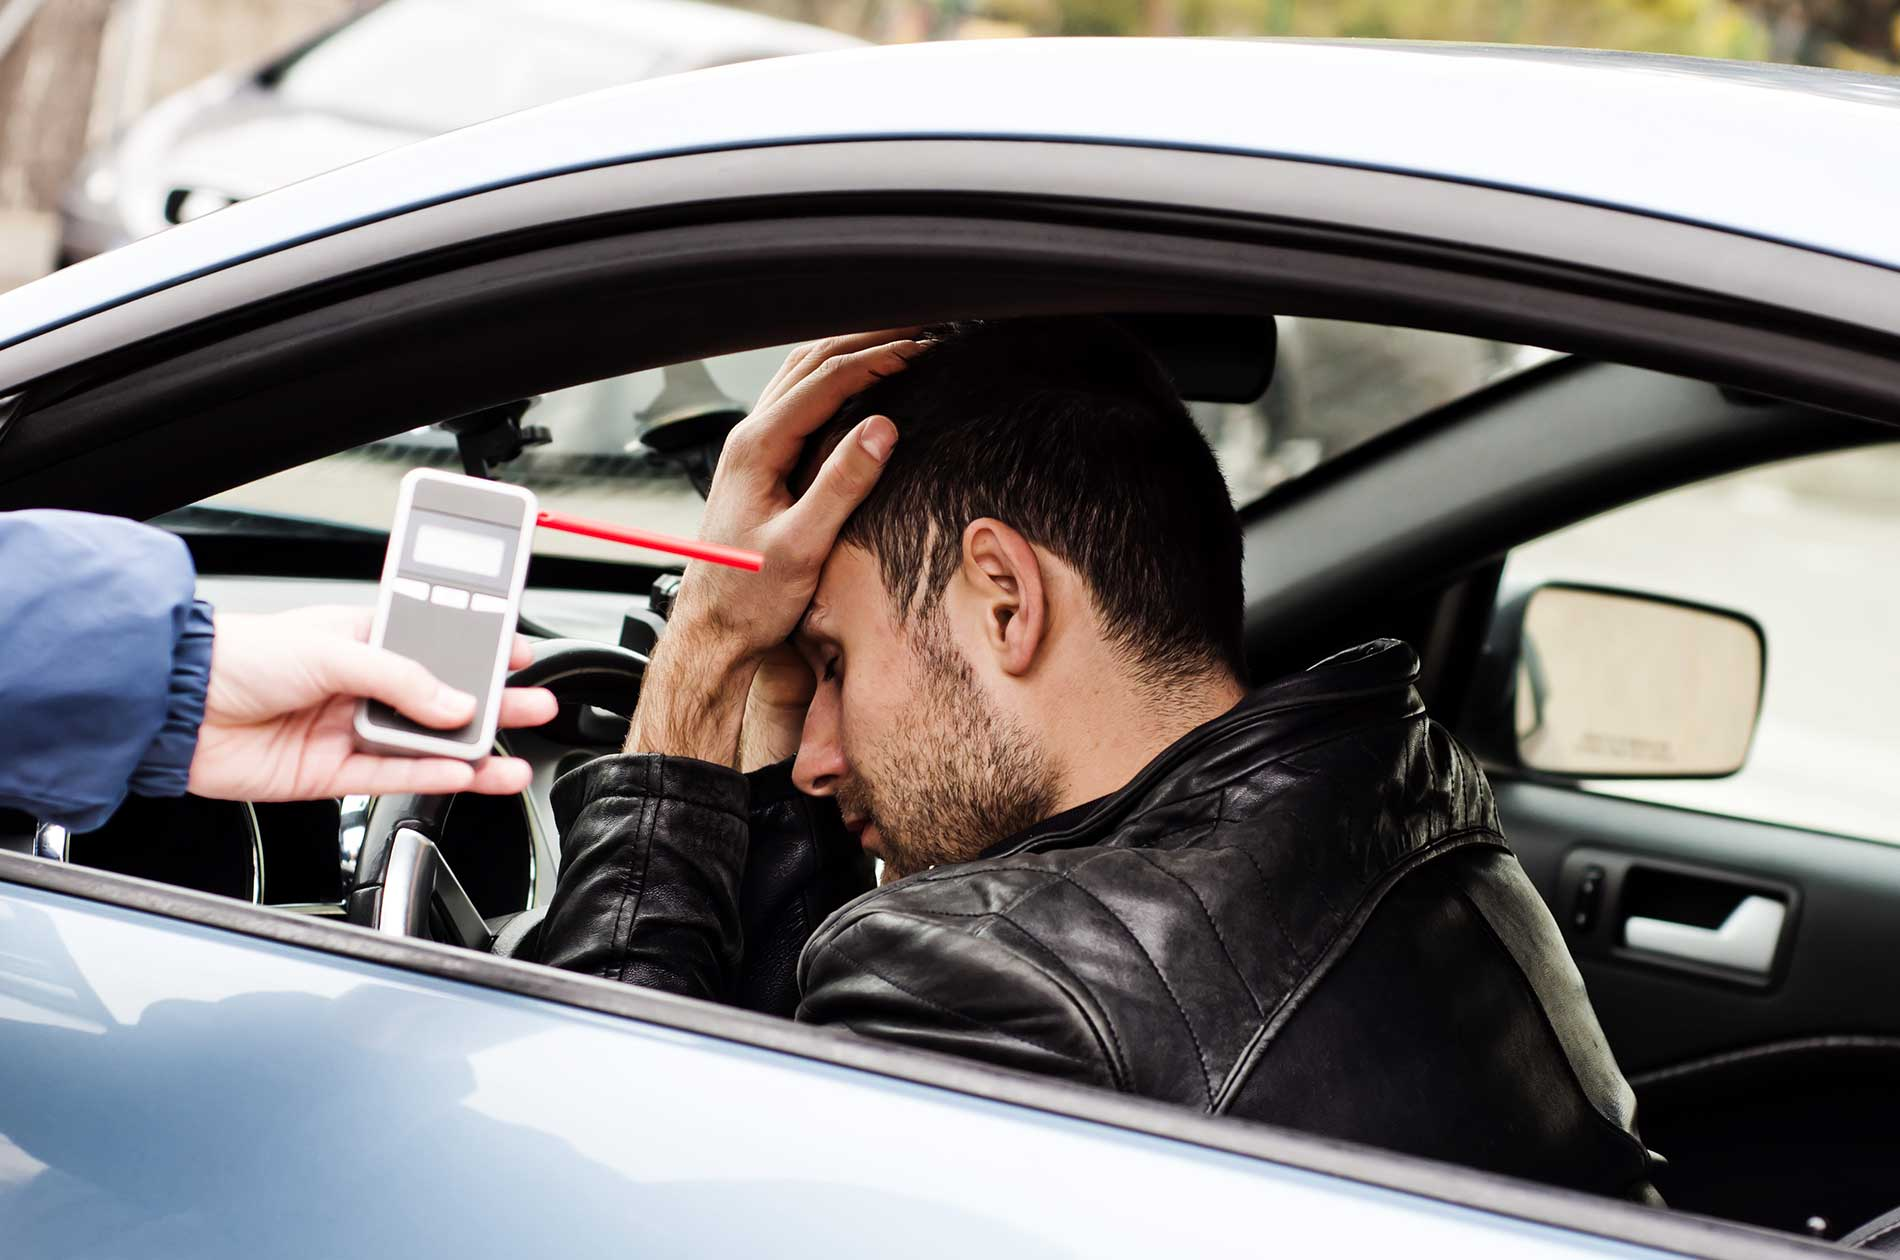 A man in a car refusing to take a breathalyzer test